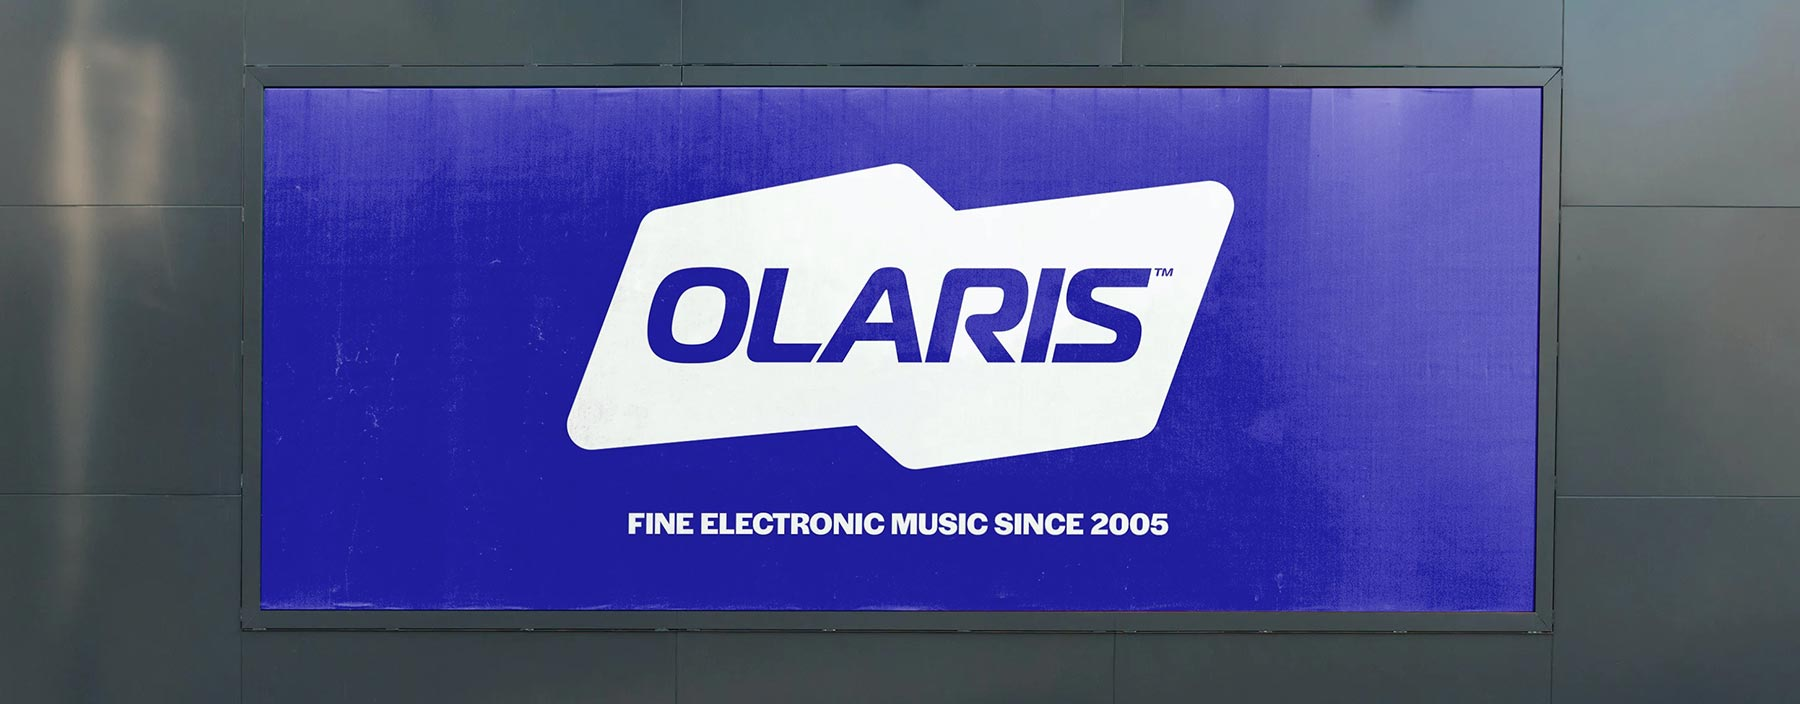 Olaris Records - Fine Electronic Music since 2005